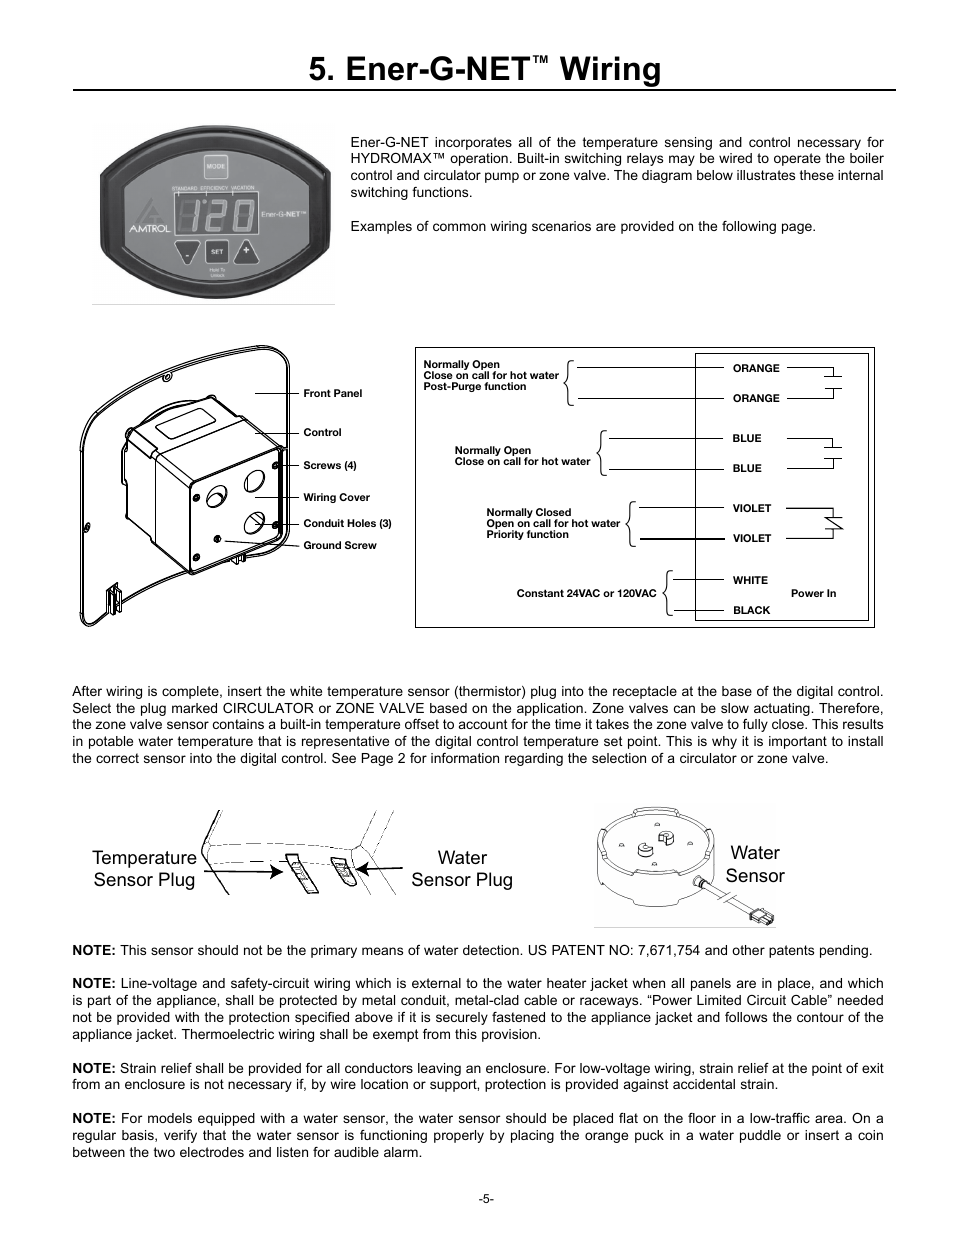 Hm Boiler Wiring Diagram Guide And Troubleshooting Of Honeywell Control Ener G Net Amtrol Hydromax 41l User Manual Page 5 12 Rh Manualsdir Com Simplified